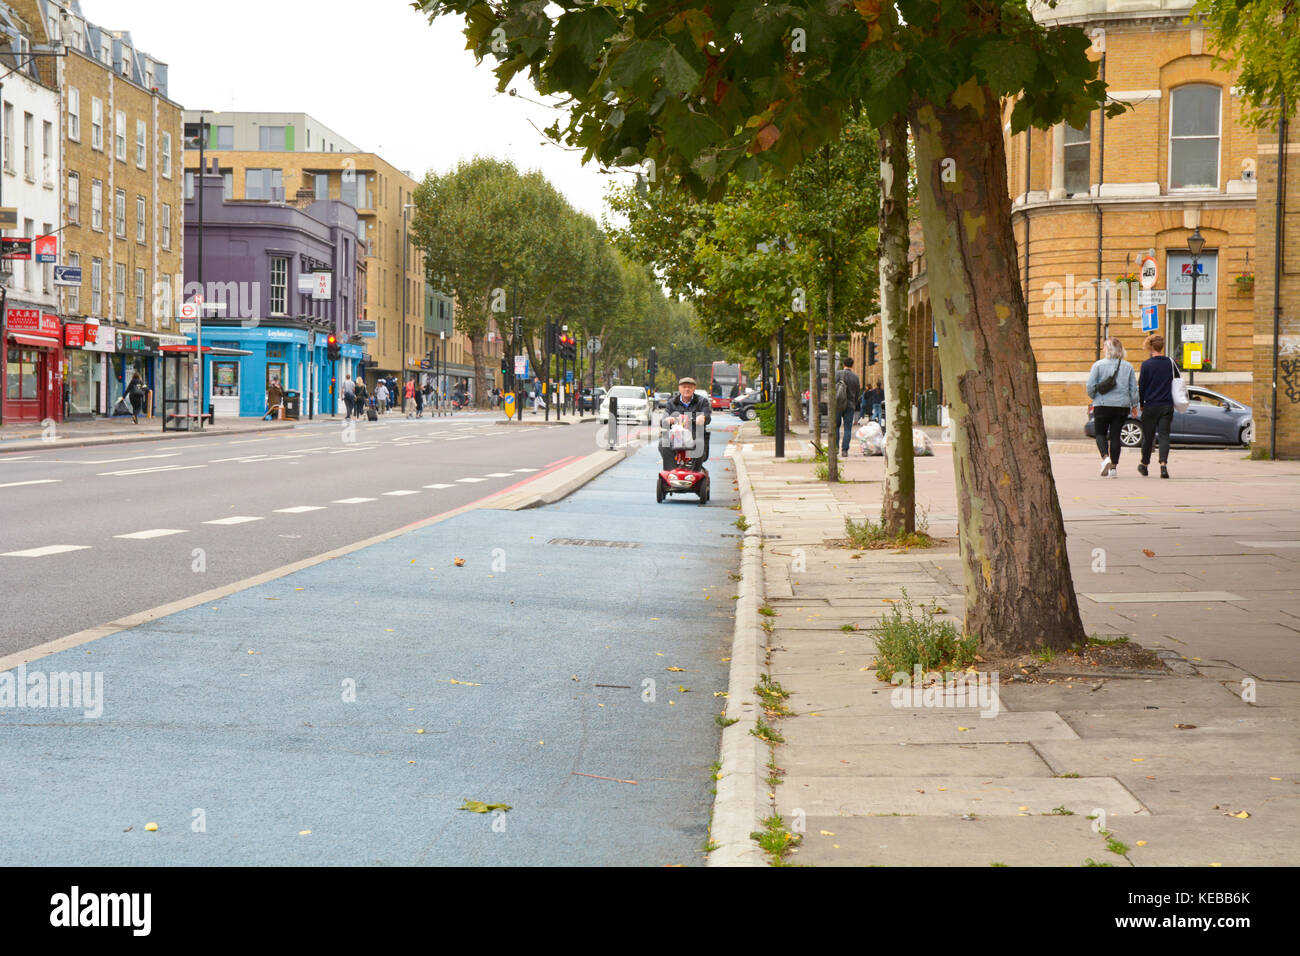 Man on mobility scooter in cycle lane on Mile End Road in London England Stock Photo